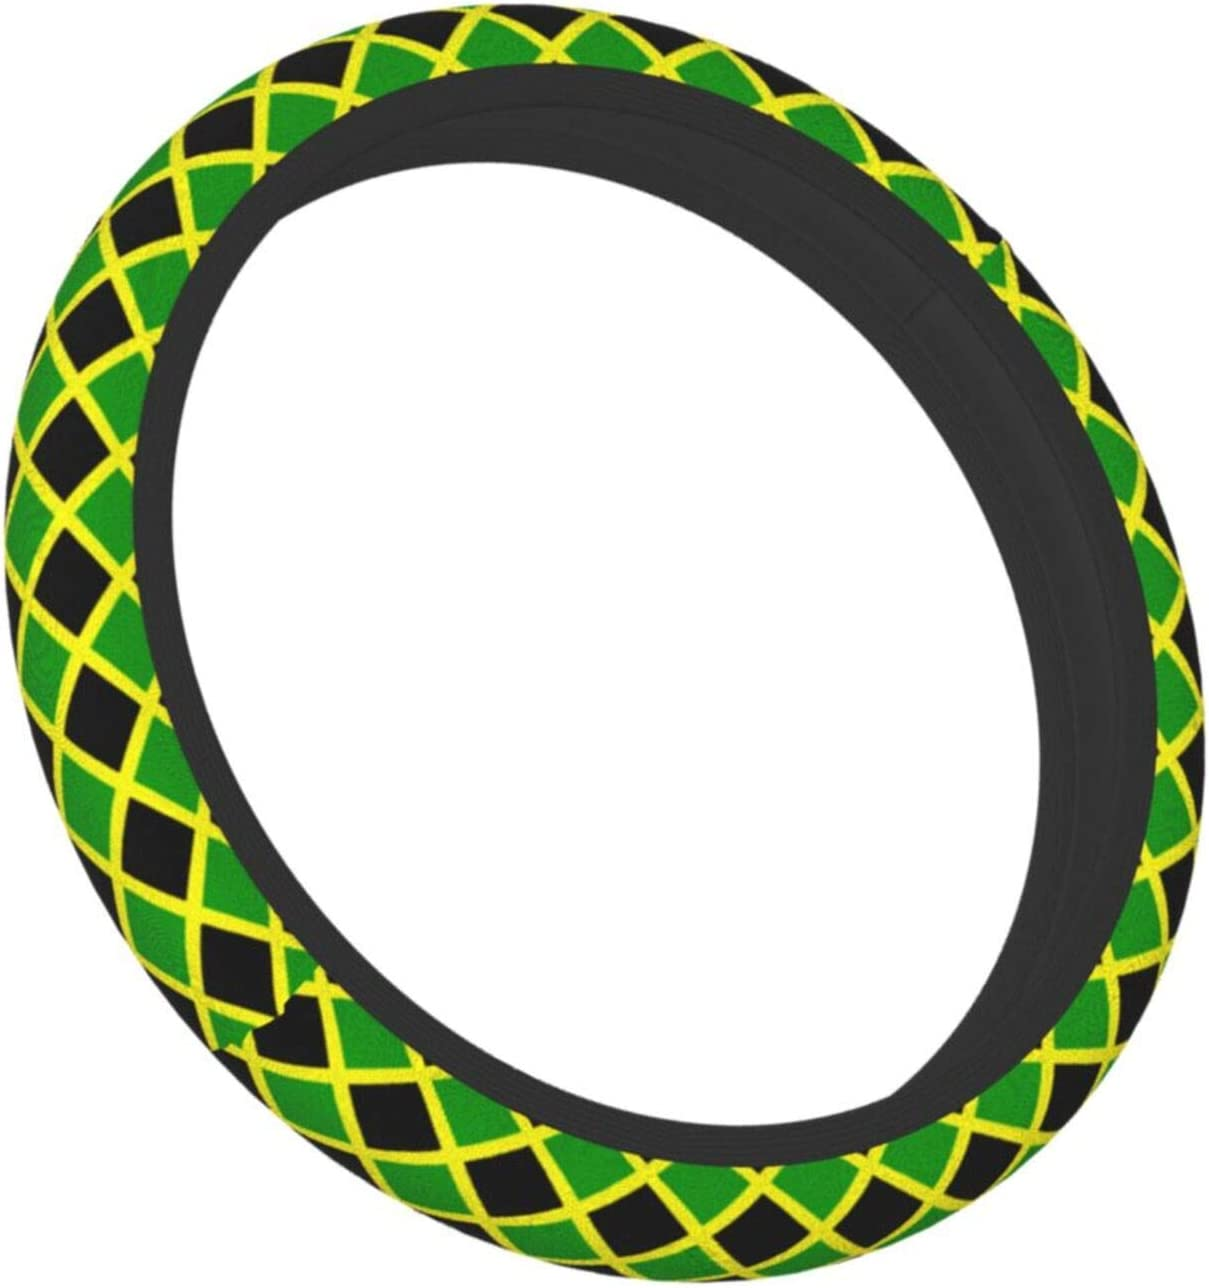 Feim-Ao Steering Wheel Cover Jamaica Flag Steering Wheel Protector Anti Slip and Sweat Absorption Auto Car Wrap Cover Universal Wheel Covers for Men Women Ladies 15in